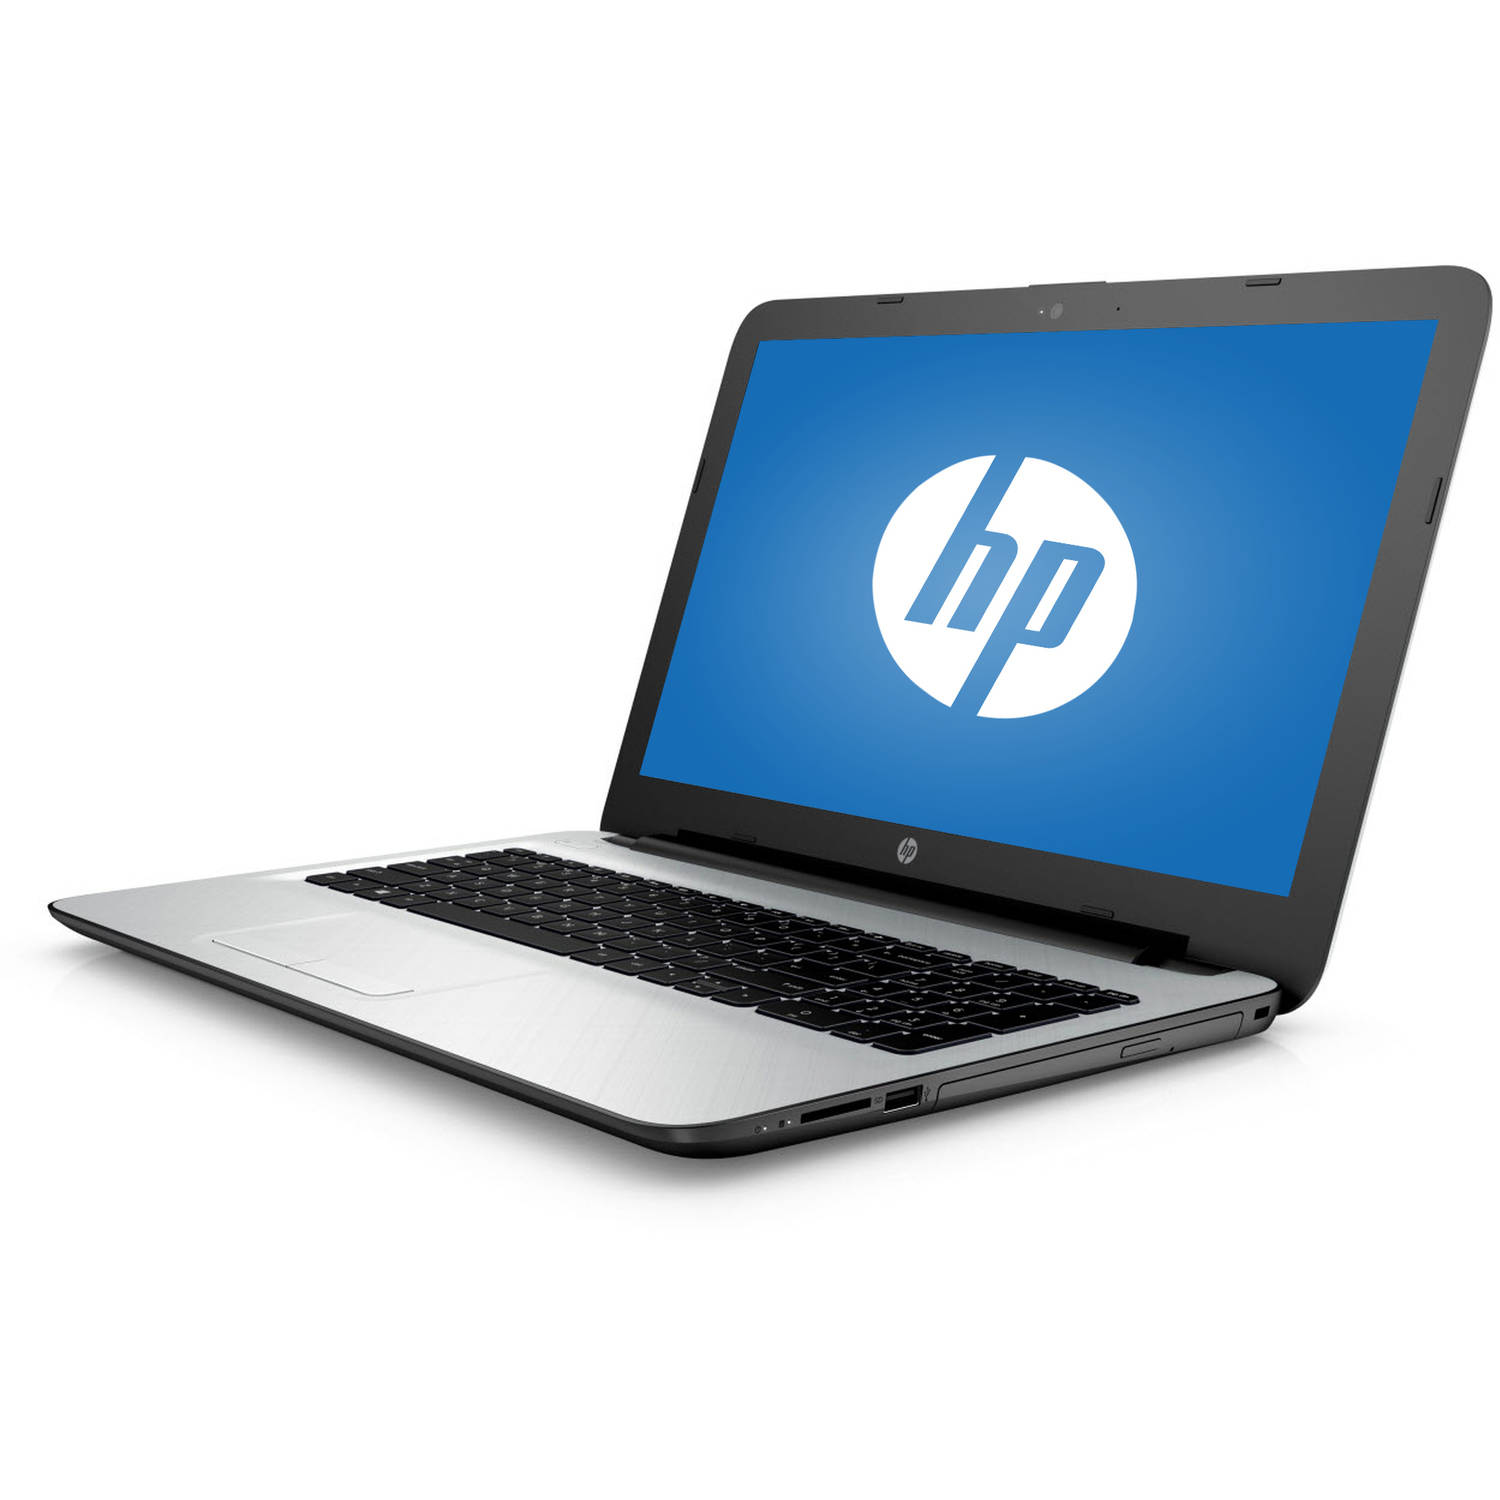 HP 15 - ac061nr 15.6 Laptop, Windows 8.1, Intel Pentium 3825U Processor, 8GB RAM, 750GB Hard Drive Refurbished